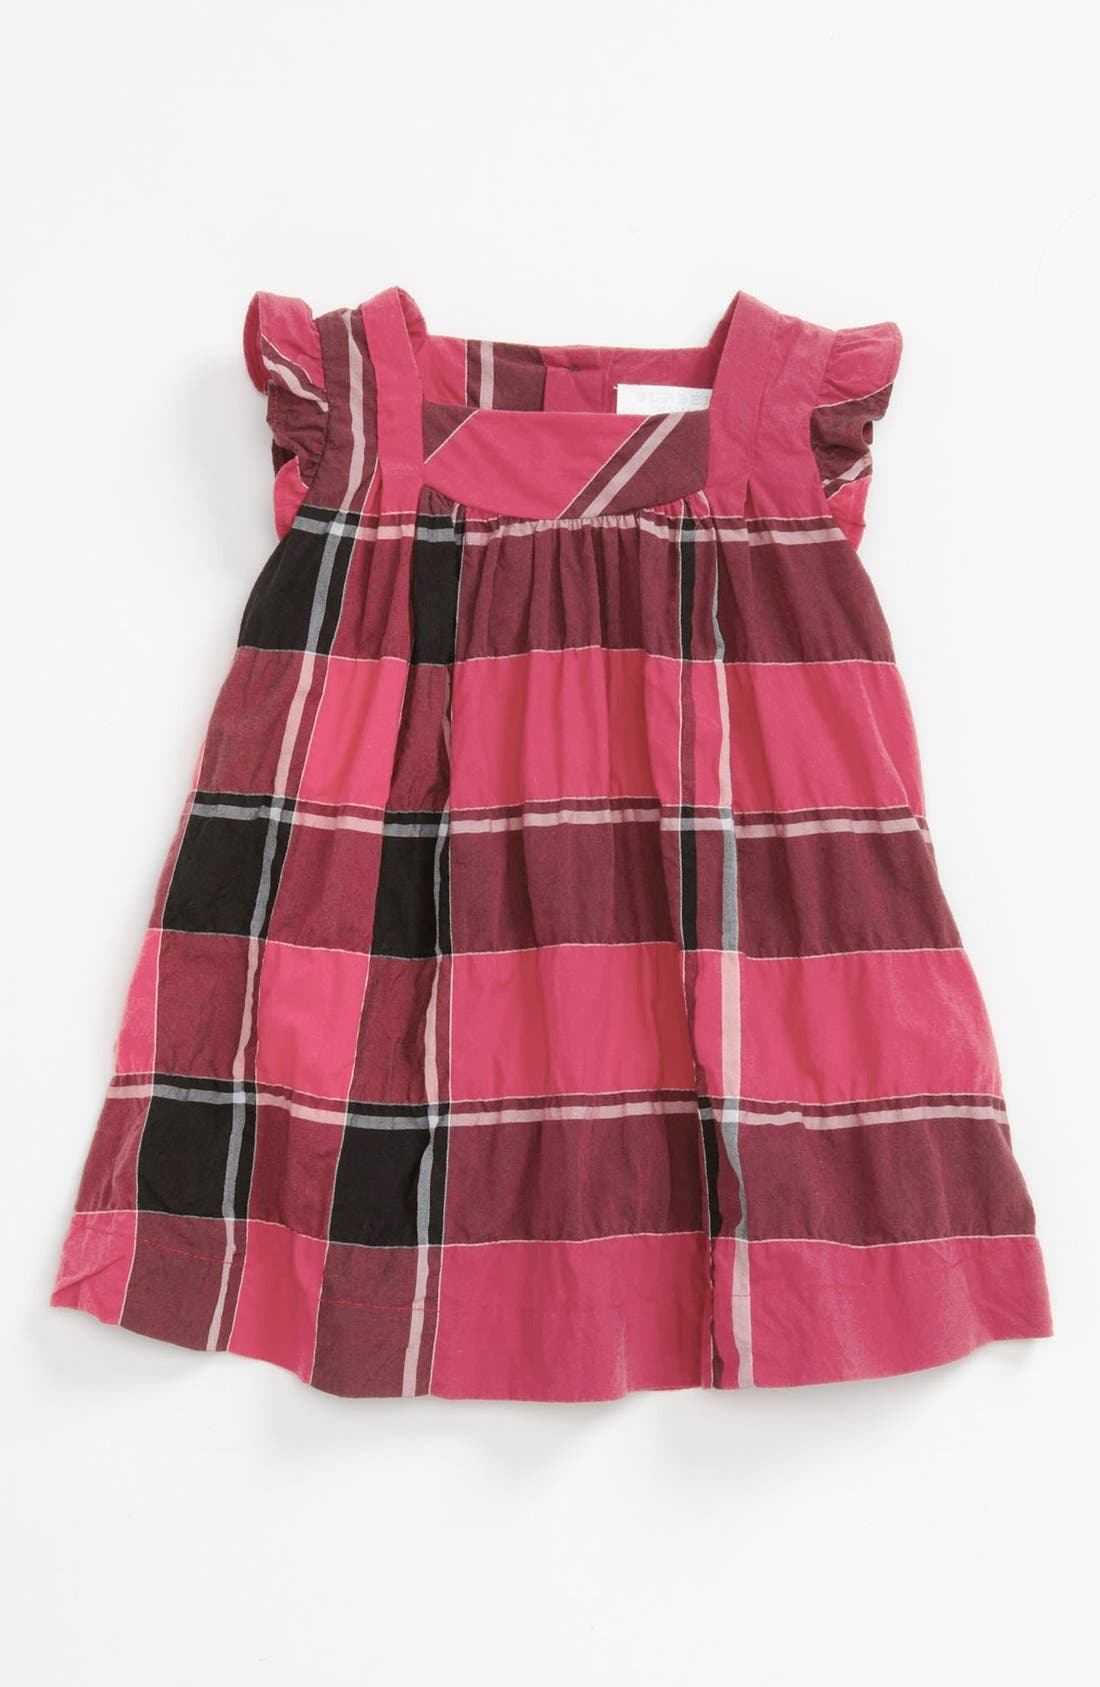 Main Image - Burberry 'Desire' Dress (Baby Girls)